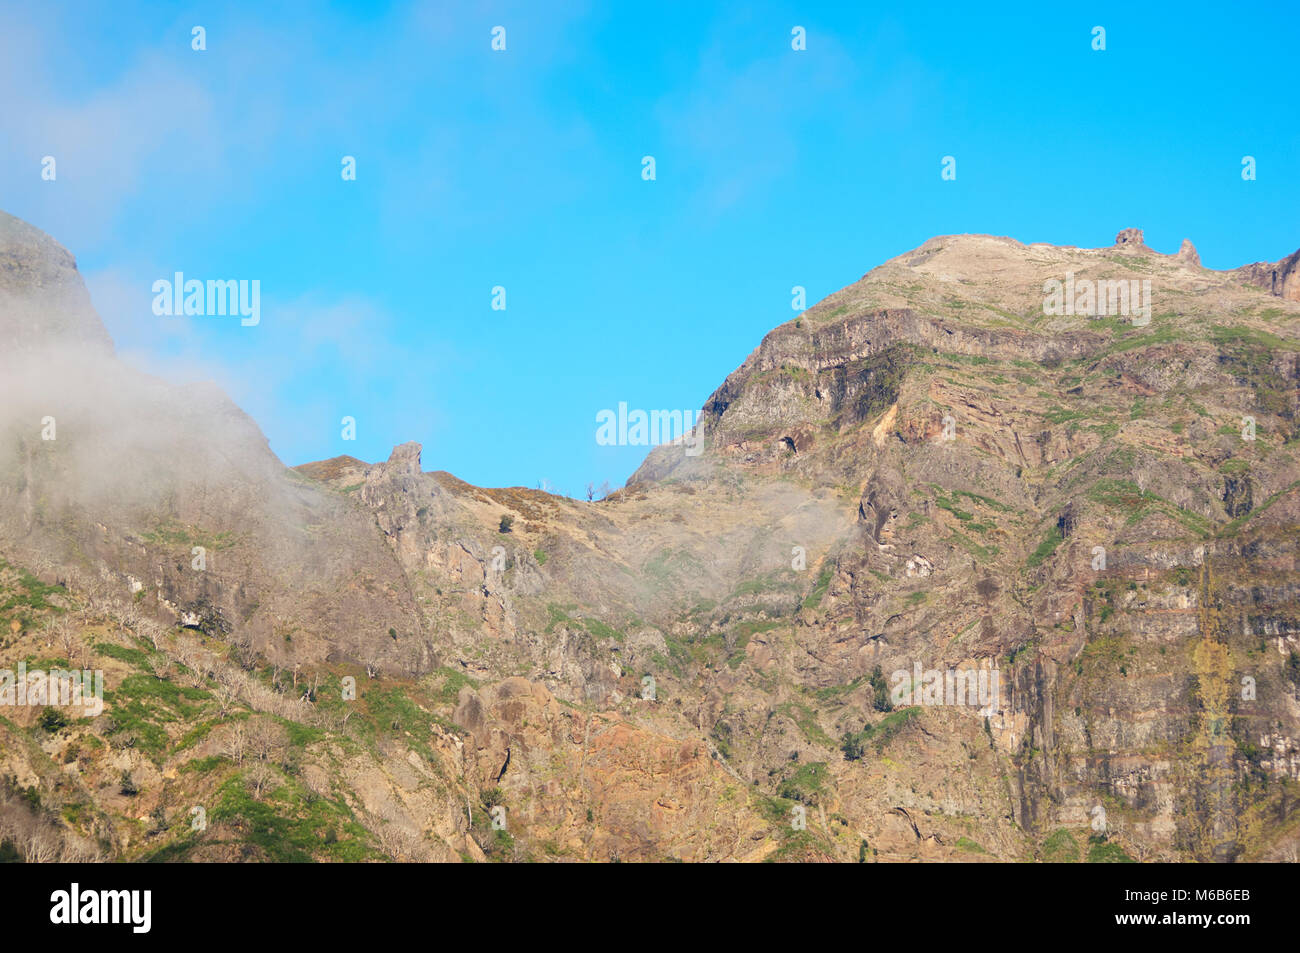 View of the high mountainous interior of central Madeira, Portugal - John Gollop - Stock Image